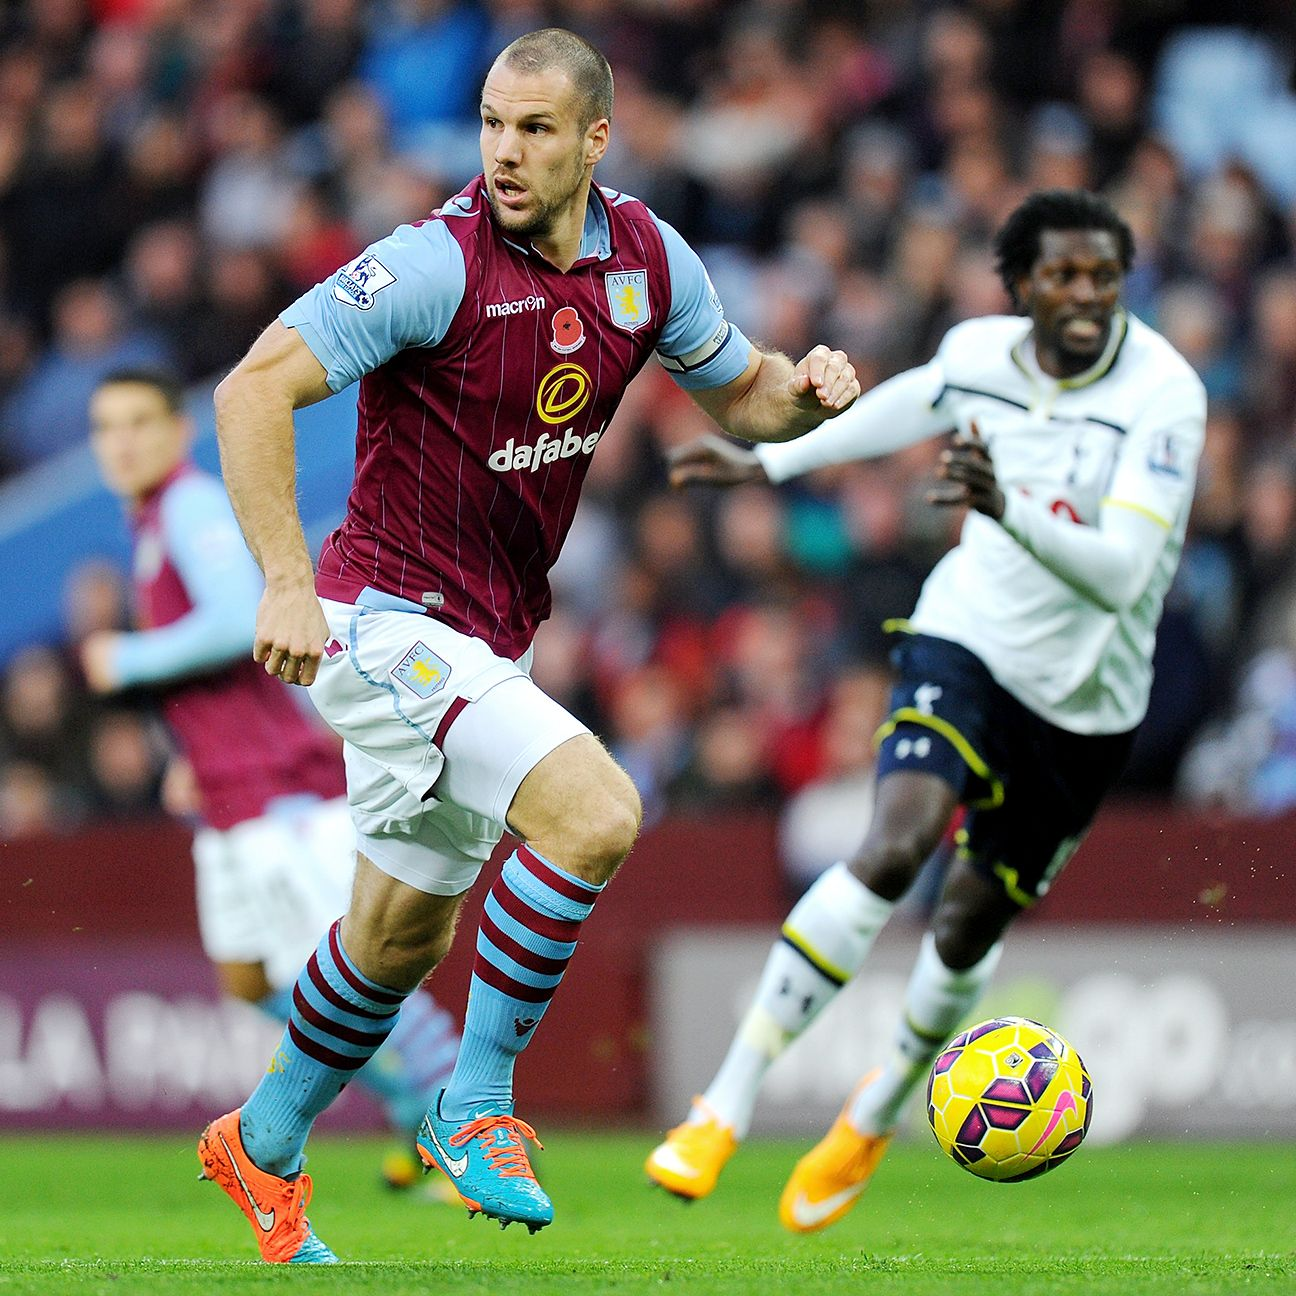 Defender Ron Vlaar may be fit enough to rejoin Villa against West Brom. Whether that is the best idea is something manager Paul Lambert must decide.